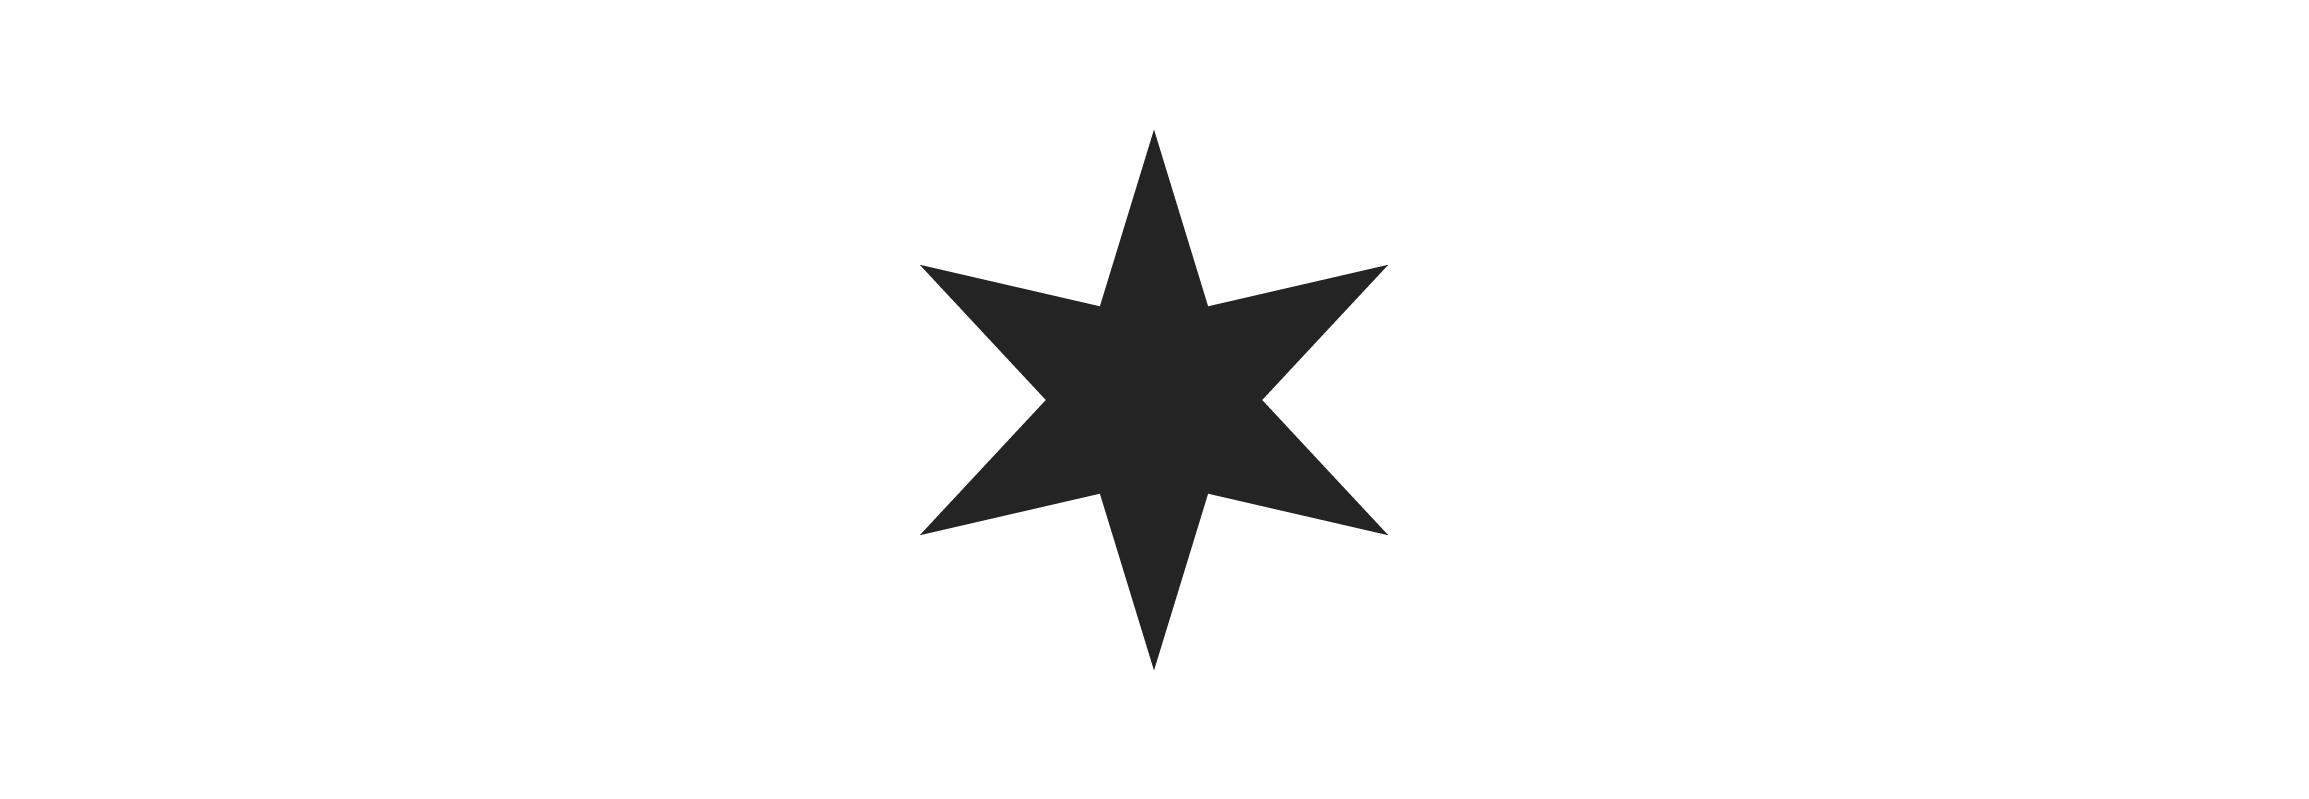 liberty-tower-star-black-negative space.png